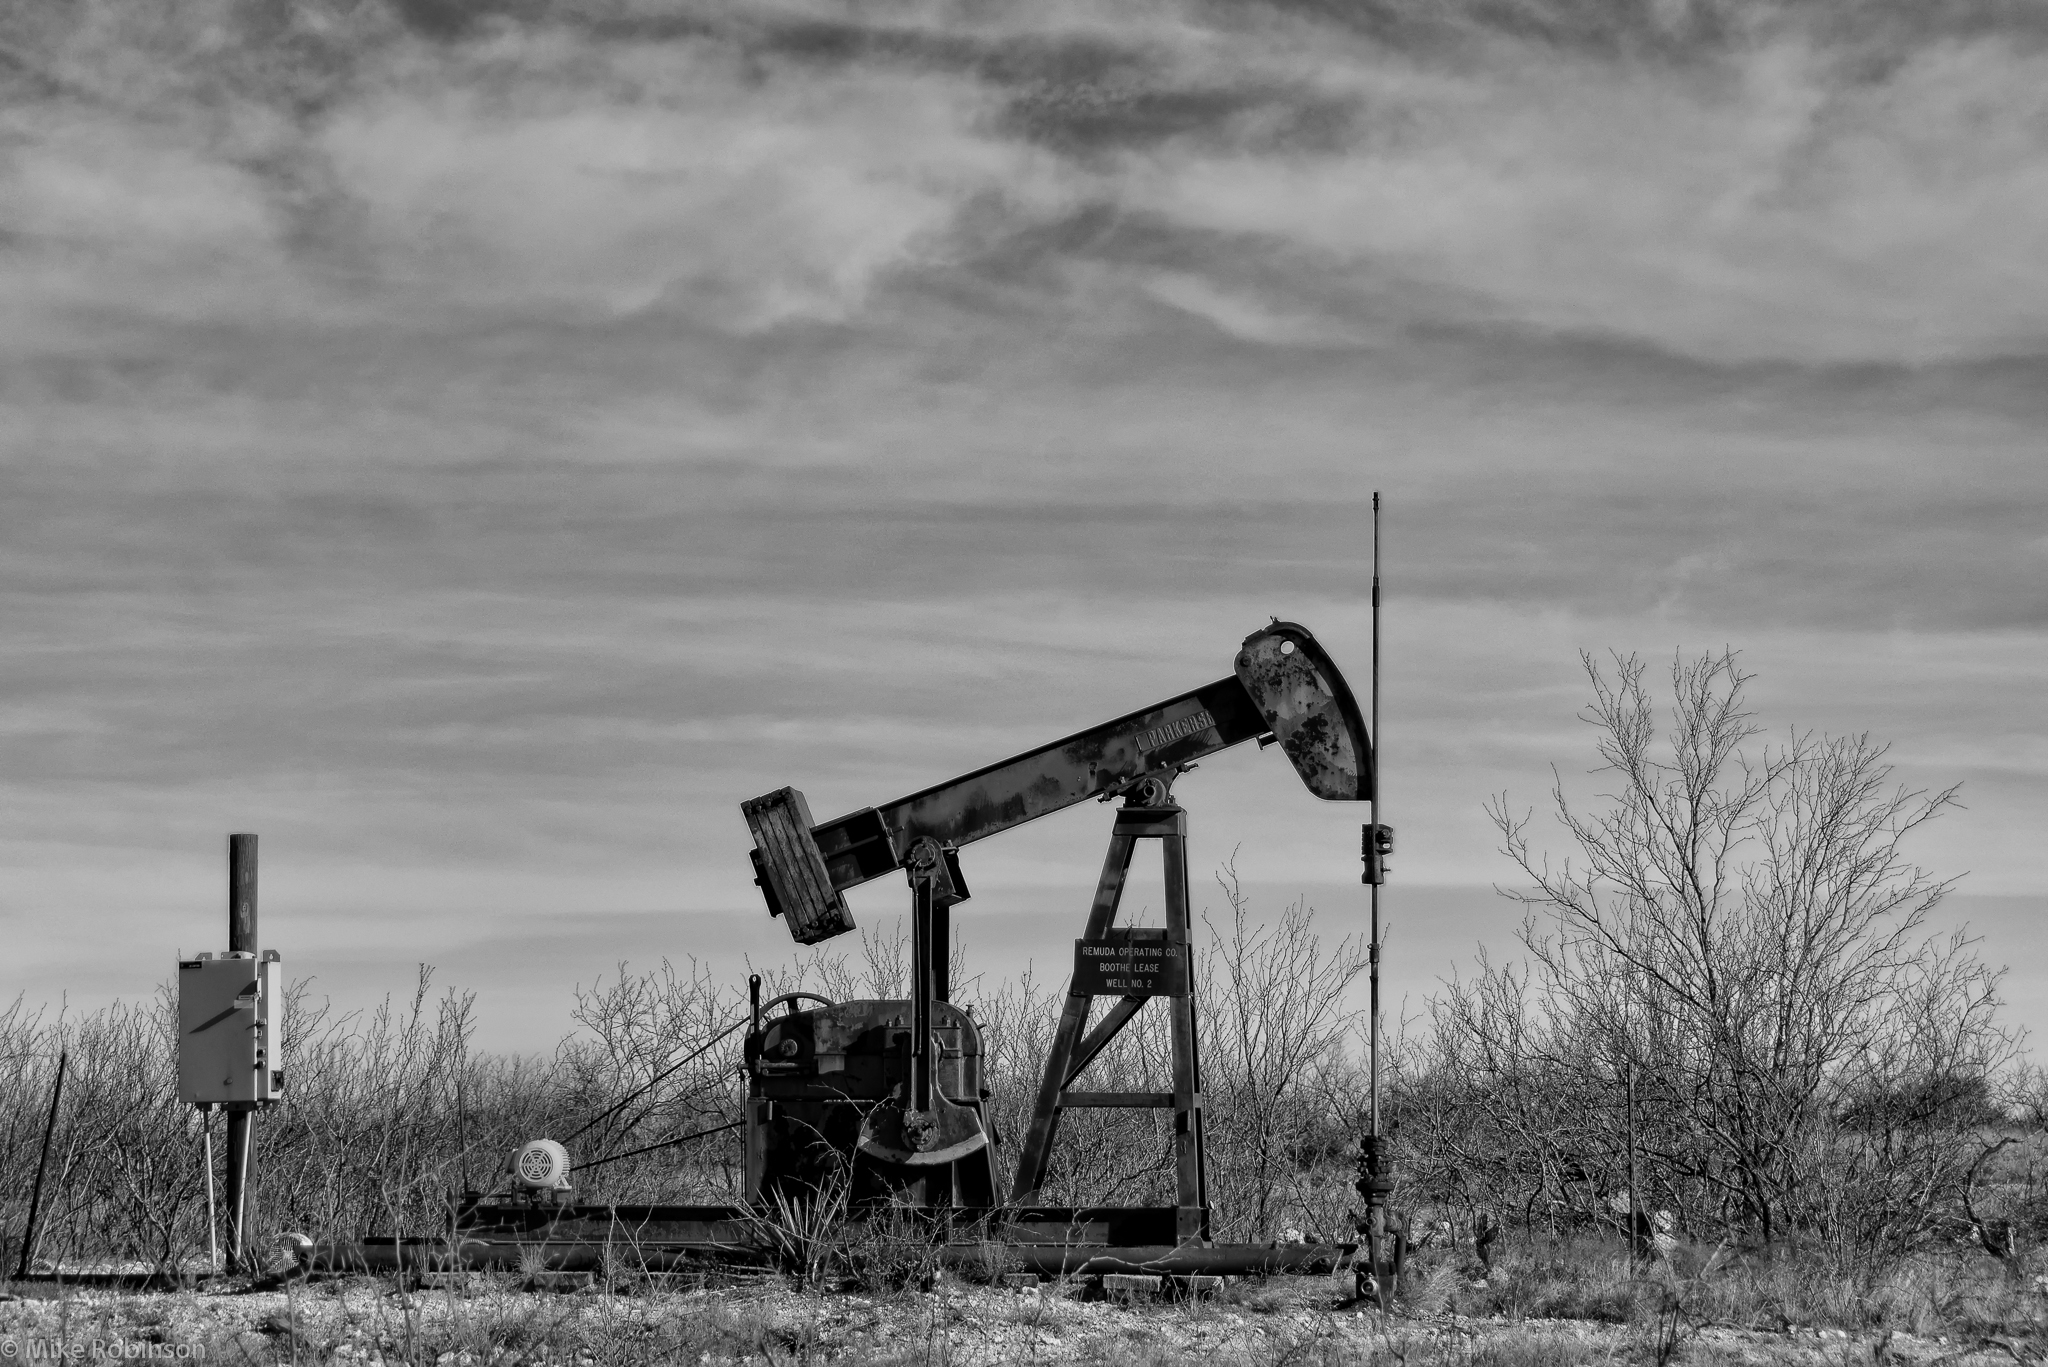 oil and economic change in texas In west texas, rising oil prices are fueling a sharp economic upswing, lifting employment and pay to records, driving up spending at hotels, restaurants, and car dealerships, and raising the cost of housing and other essentials.